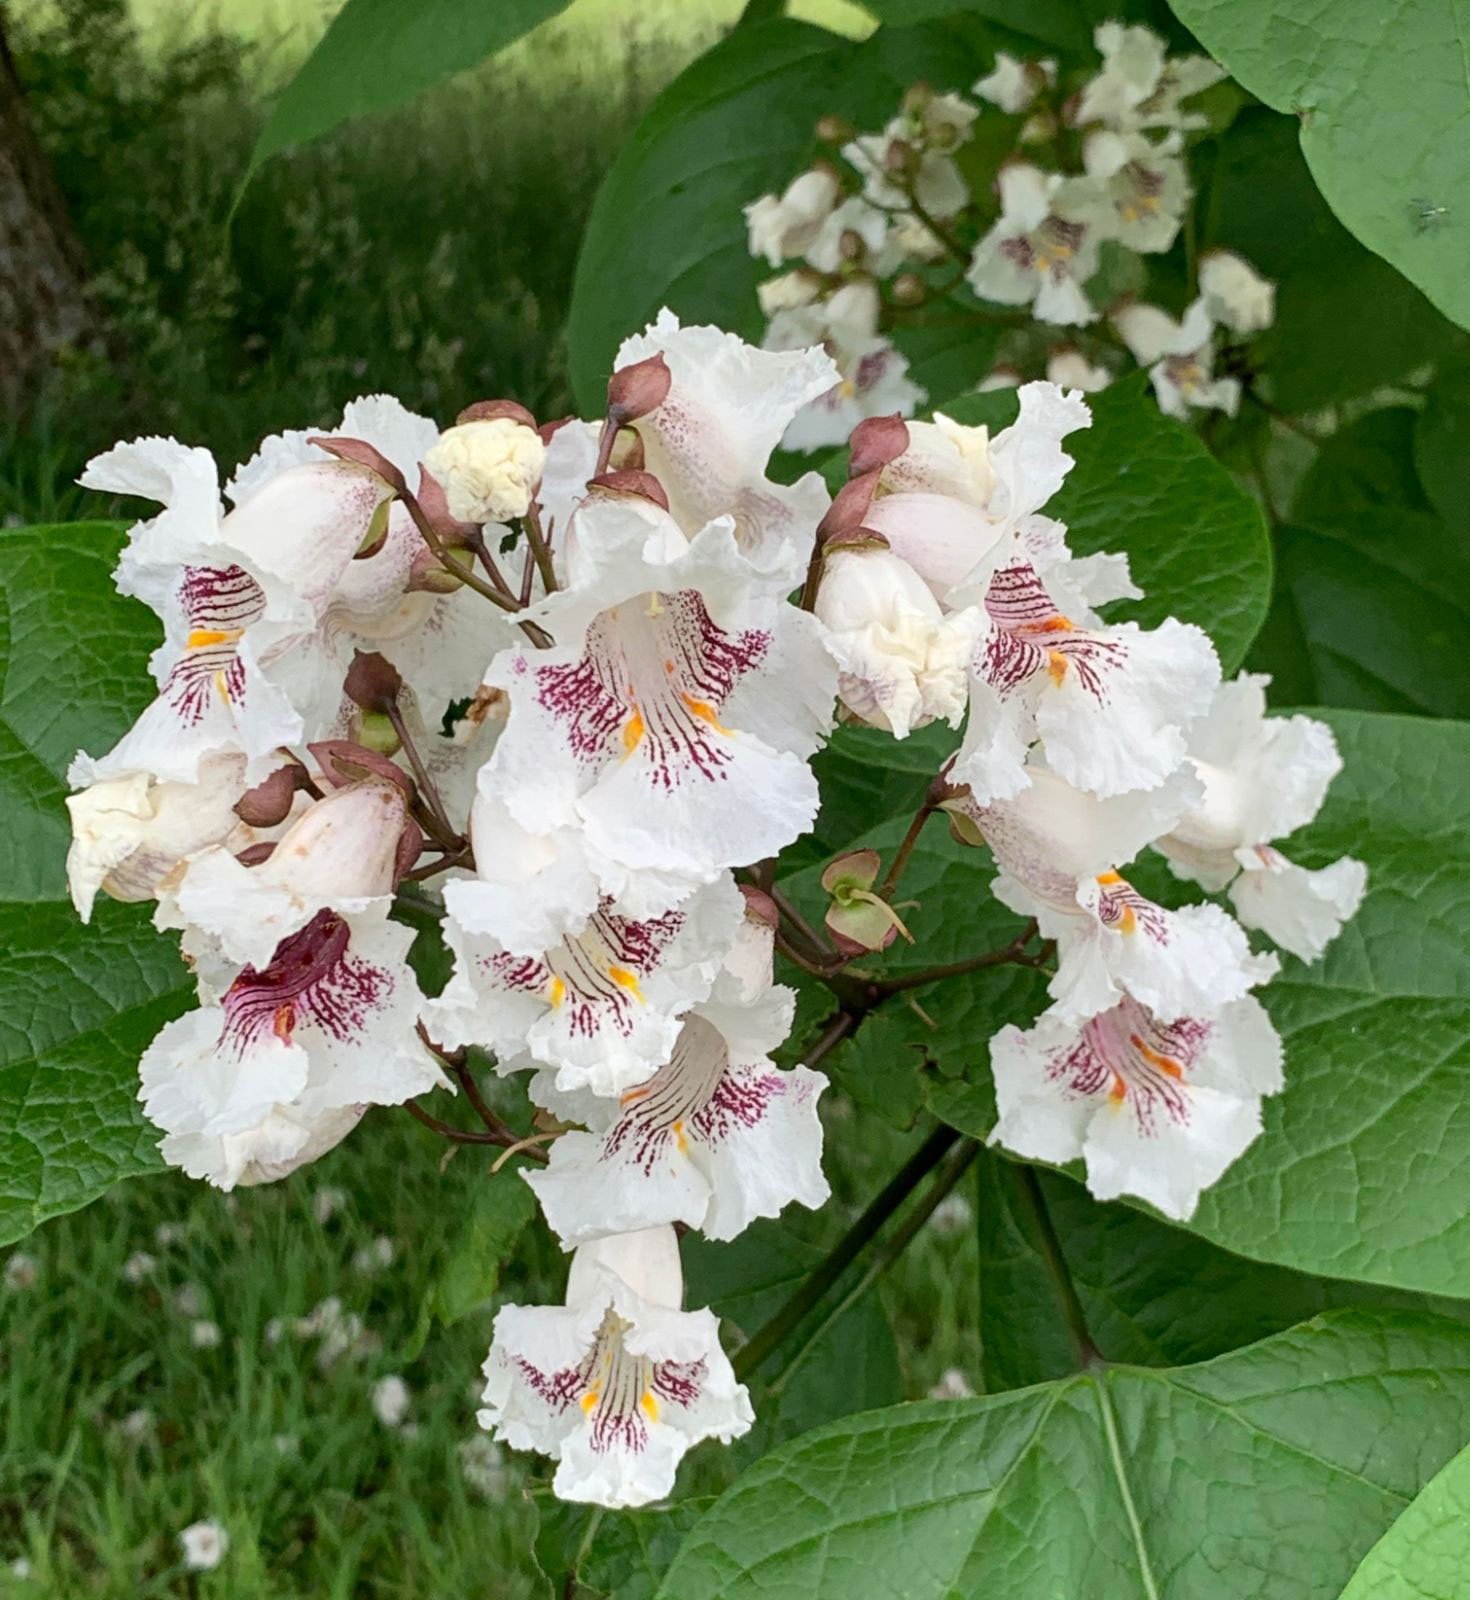 Flowers-of-Indian-bean-tree